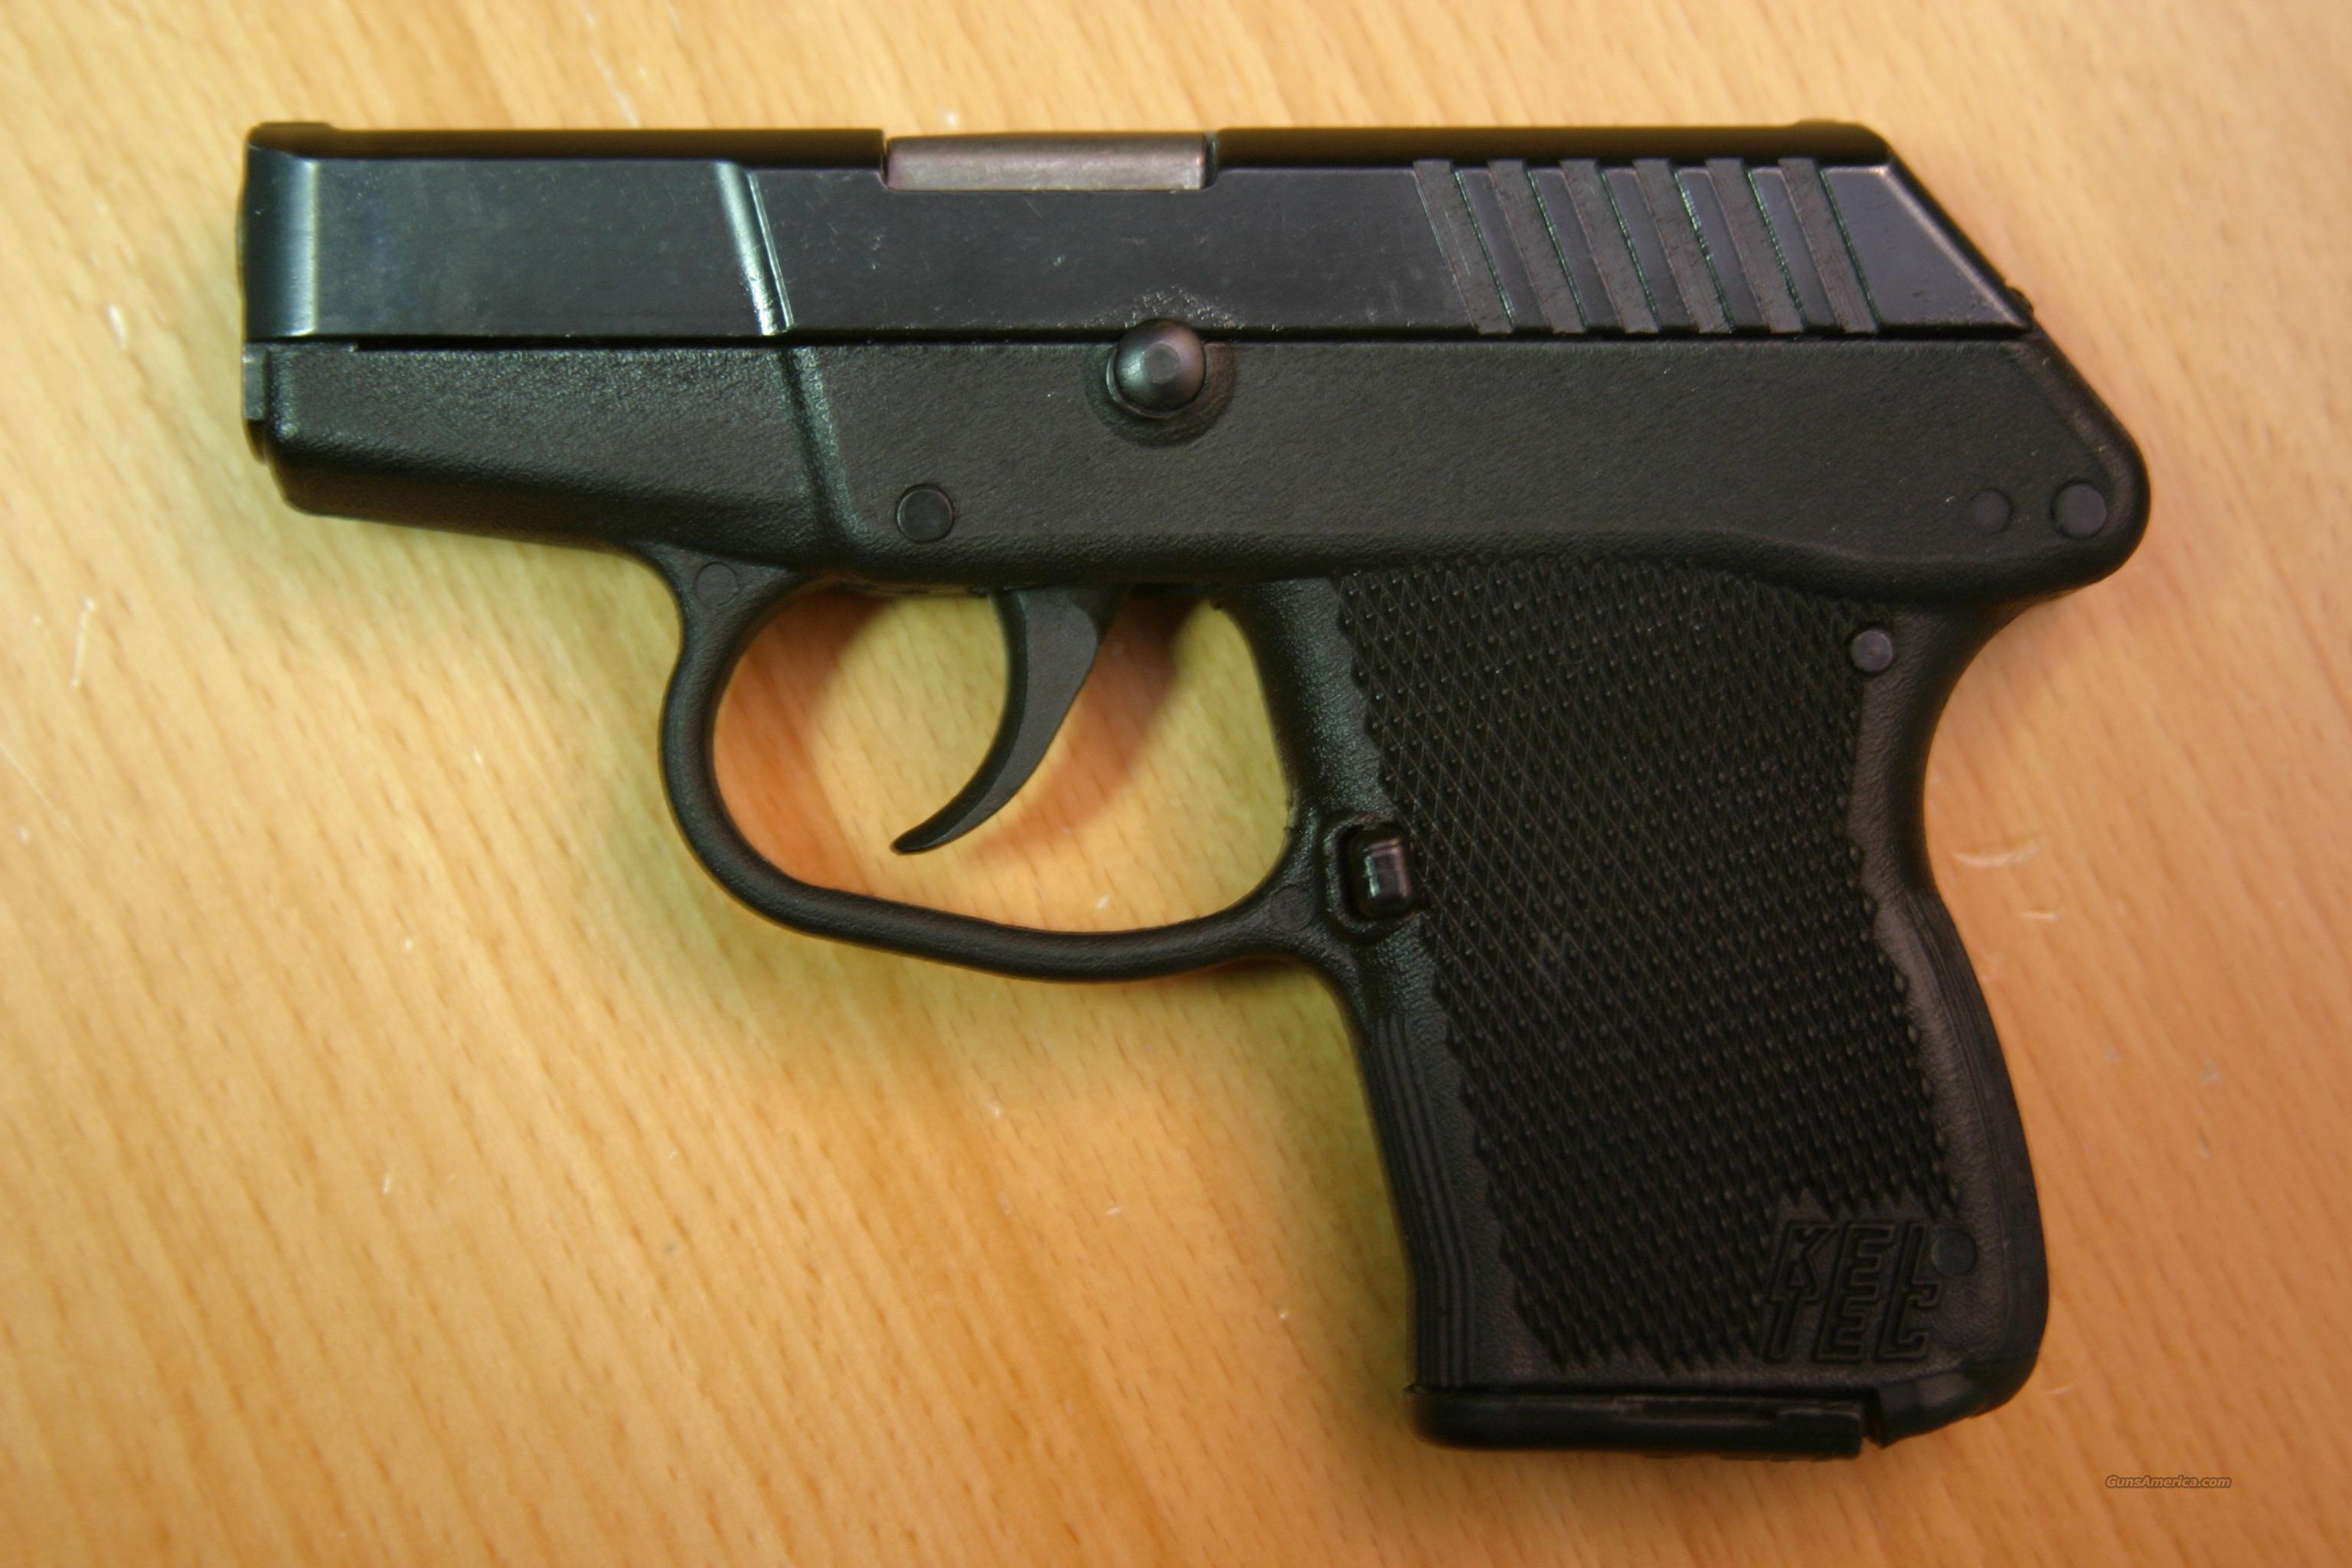 Kel Tec P3AT 380acp, Black, Nice gun!  Guns > Pistols > Kel-Tec Pistols > Pocket Pistol Type